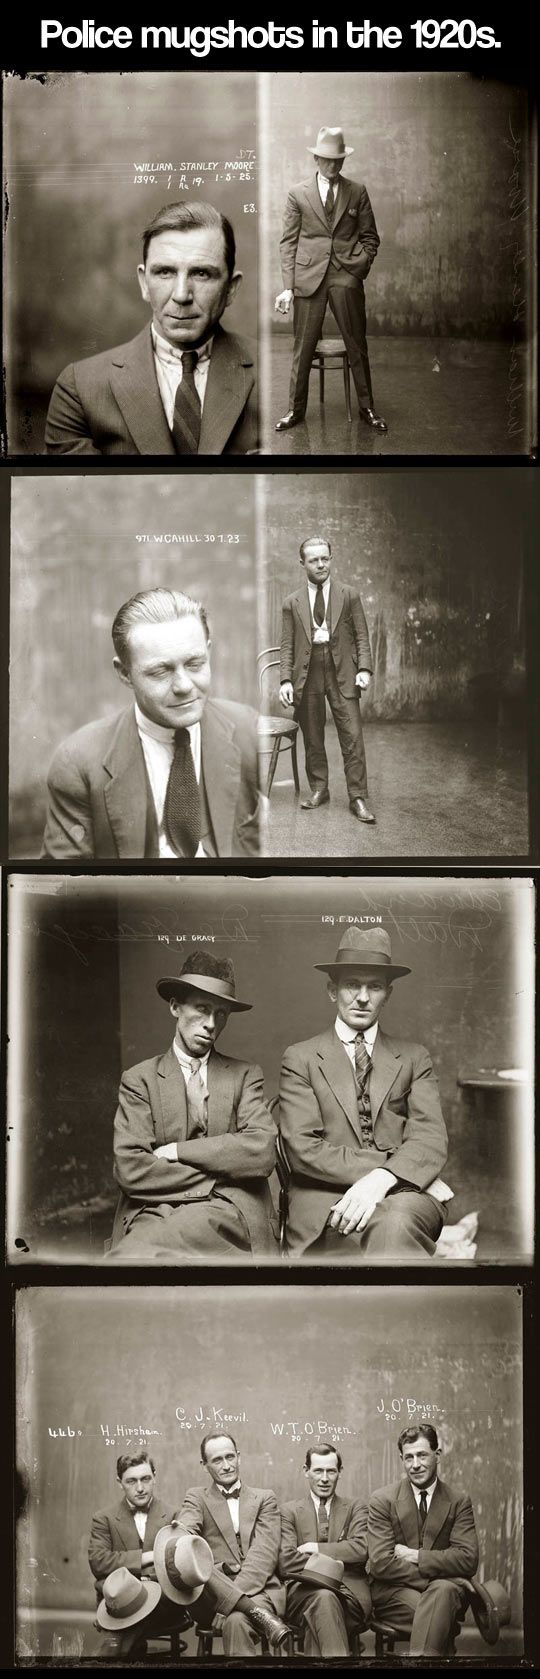 police mugshots in the 1920's